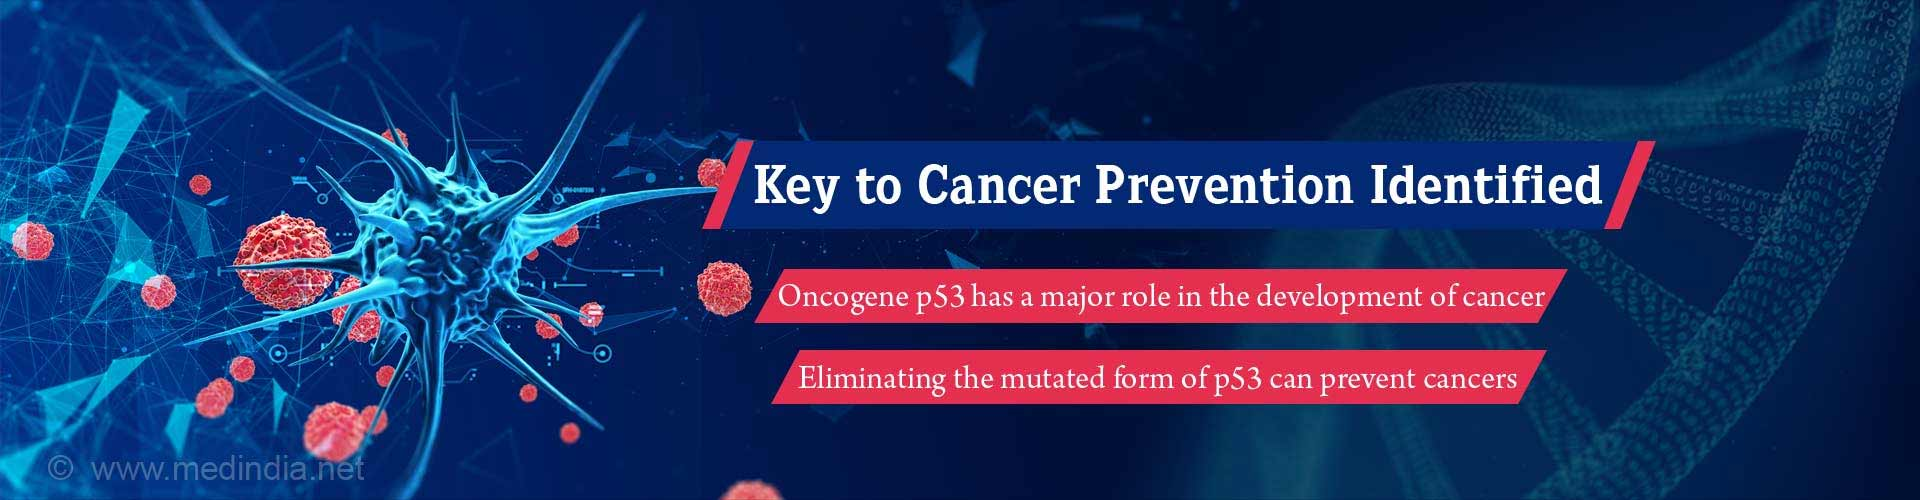 Unmutated Form of P53 Protein is the Key to Cancer Prevention